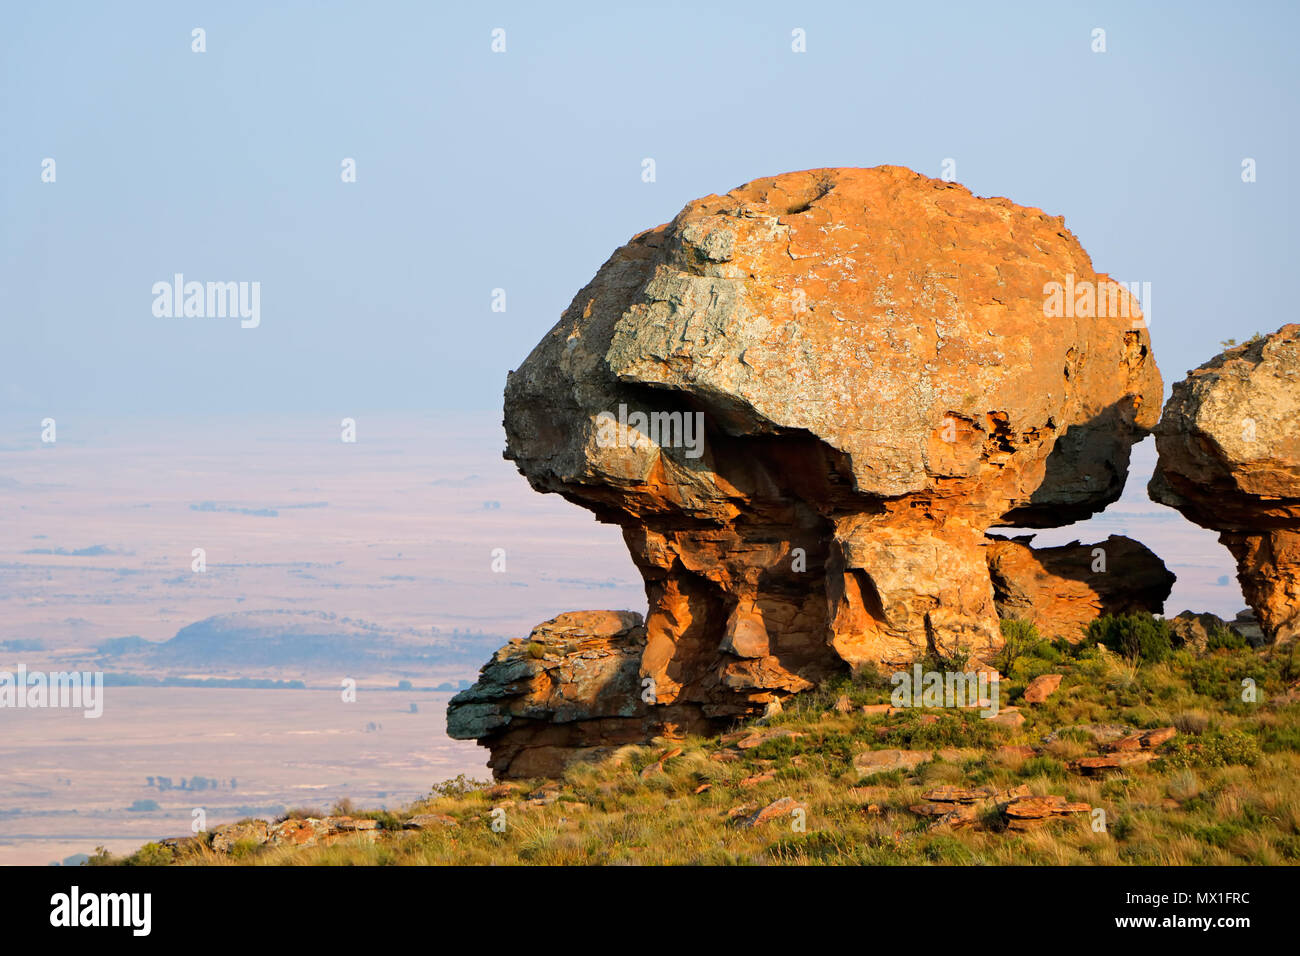 Sandstone rock formation against a distant hazy sky, South Africa Stock Photo